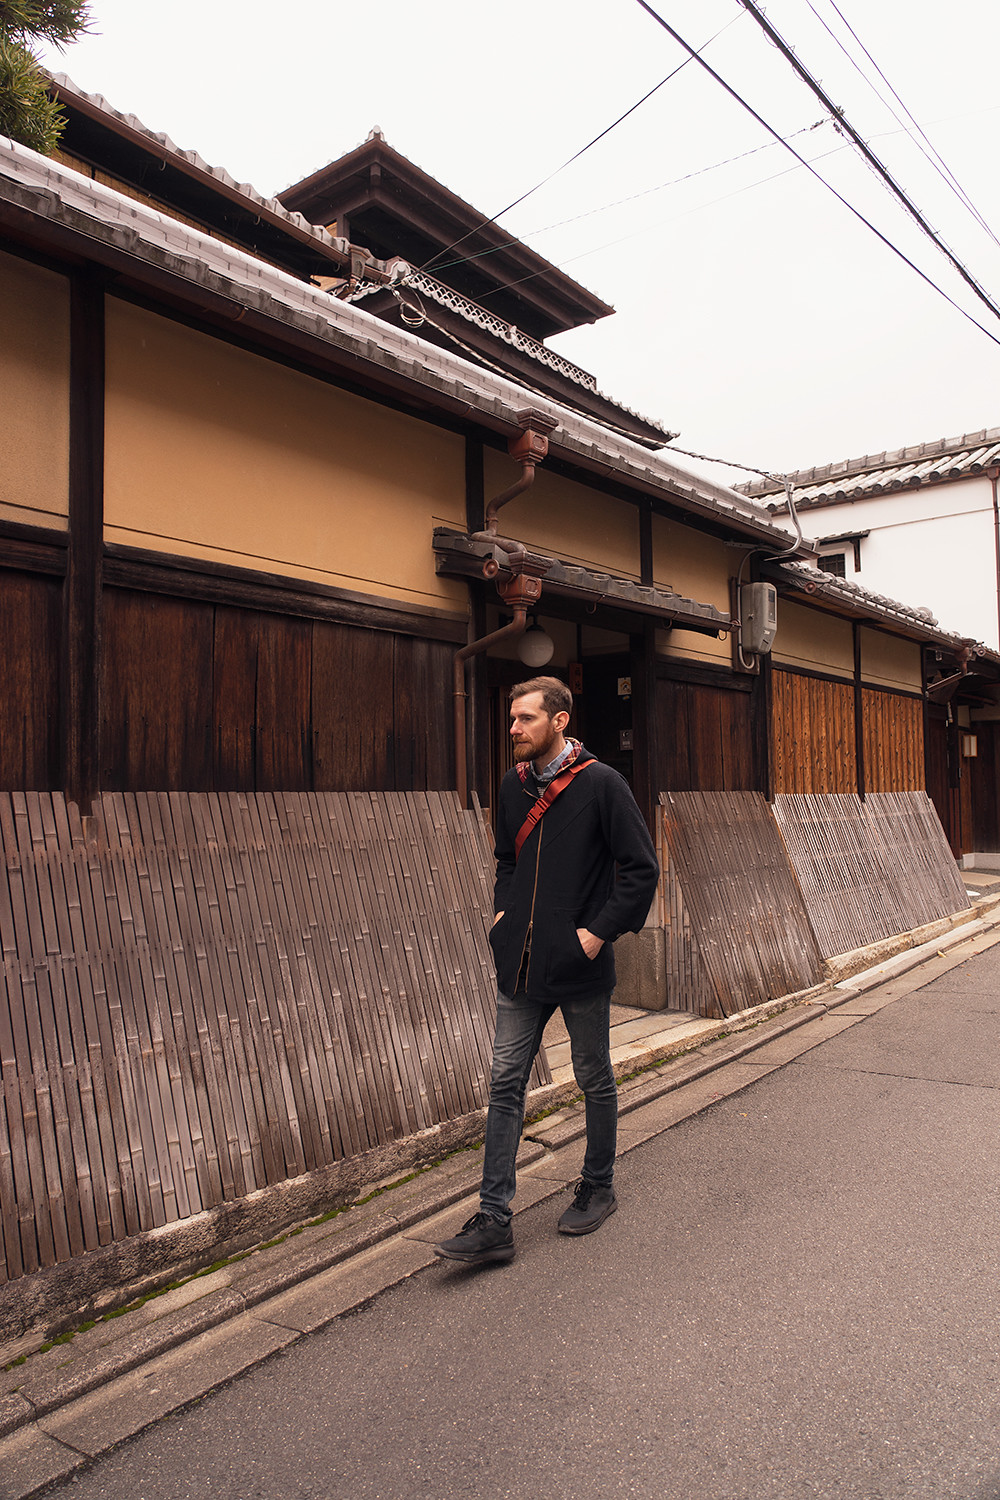 23kyoto-gion-architecture-japan-travel